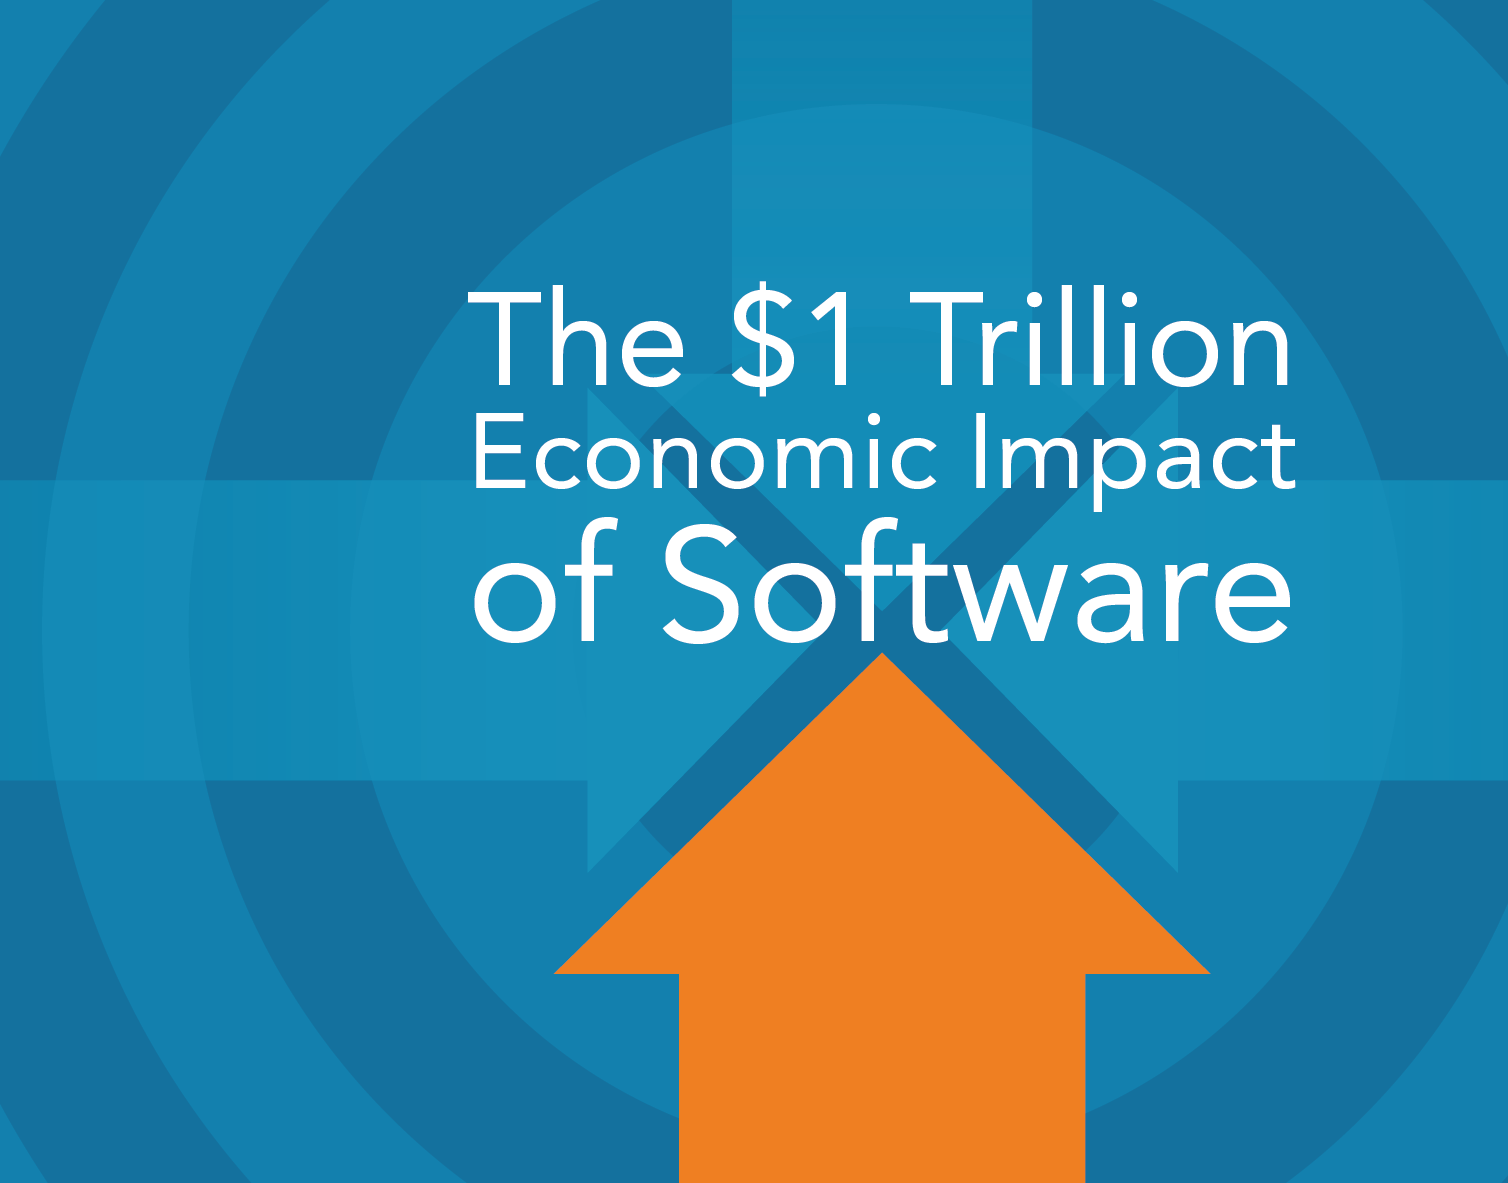 BSA : The $1 Trillion Economic Impact of Software